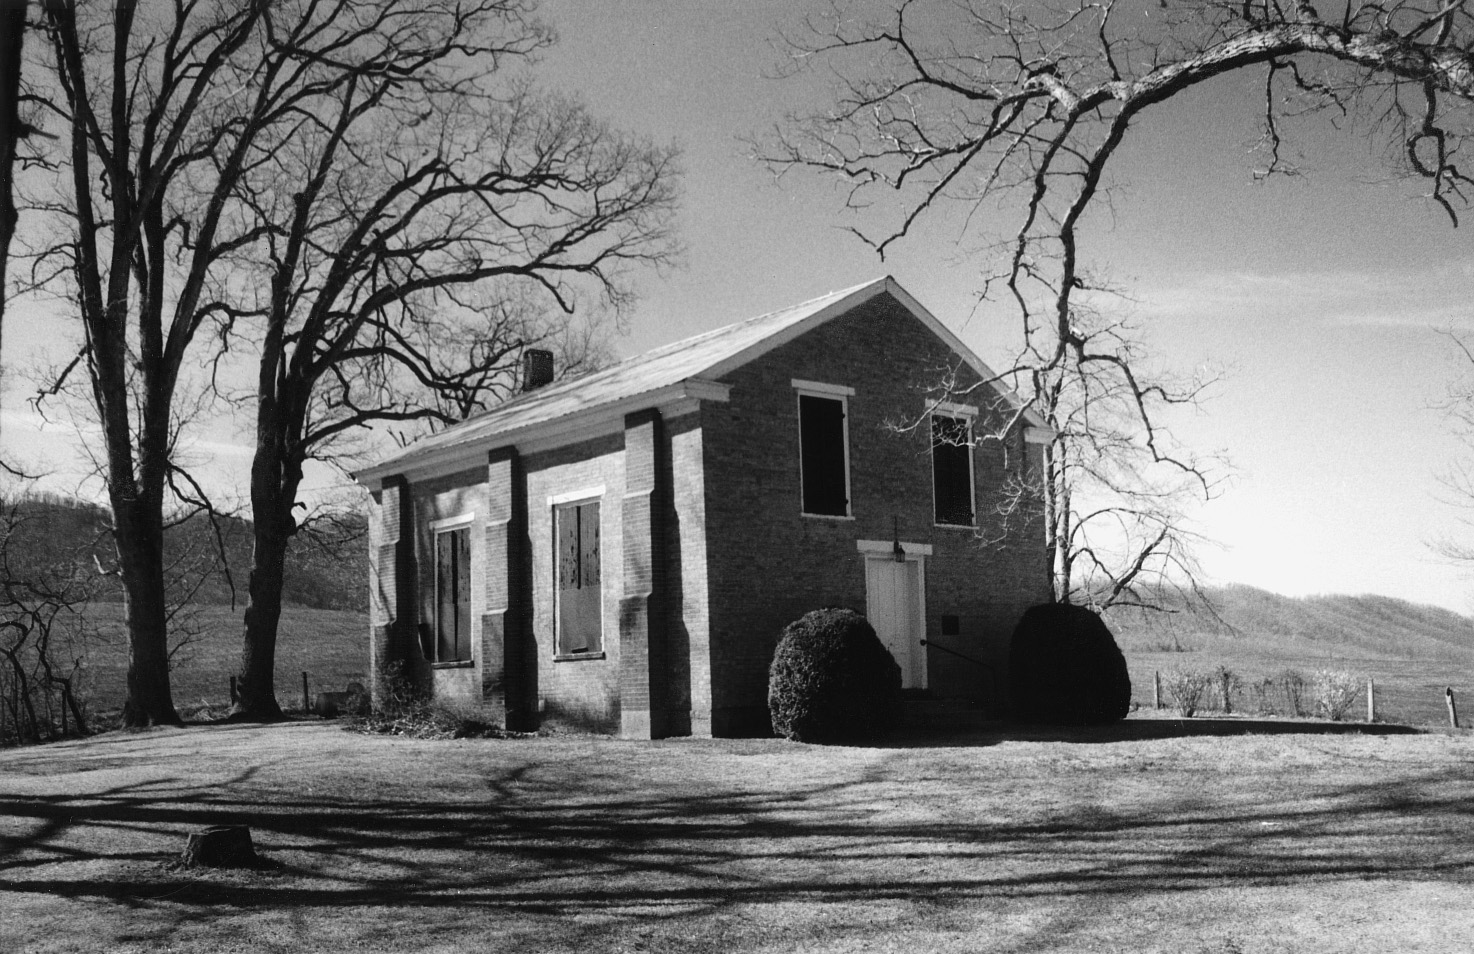 Crockett's Cove Presbyterian Church, photo from the Virginia Dept of Historic Resources